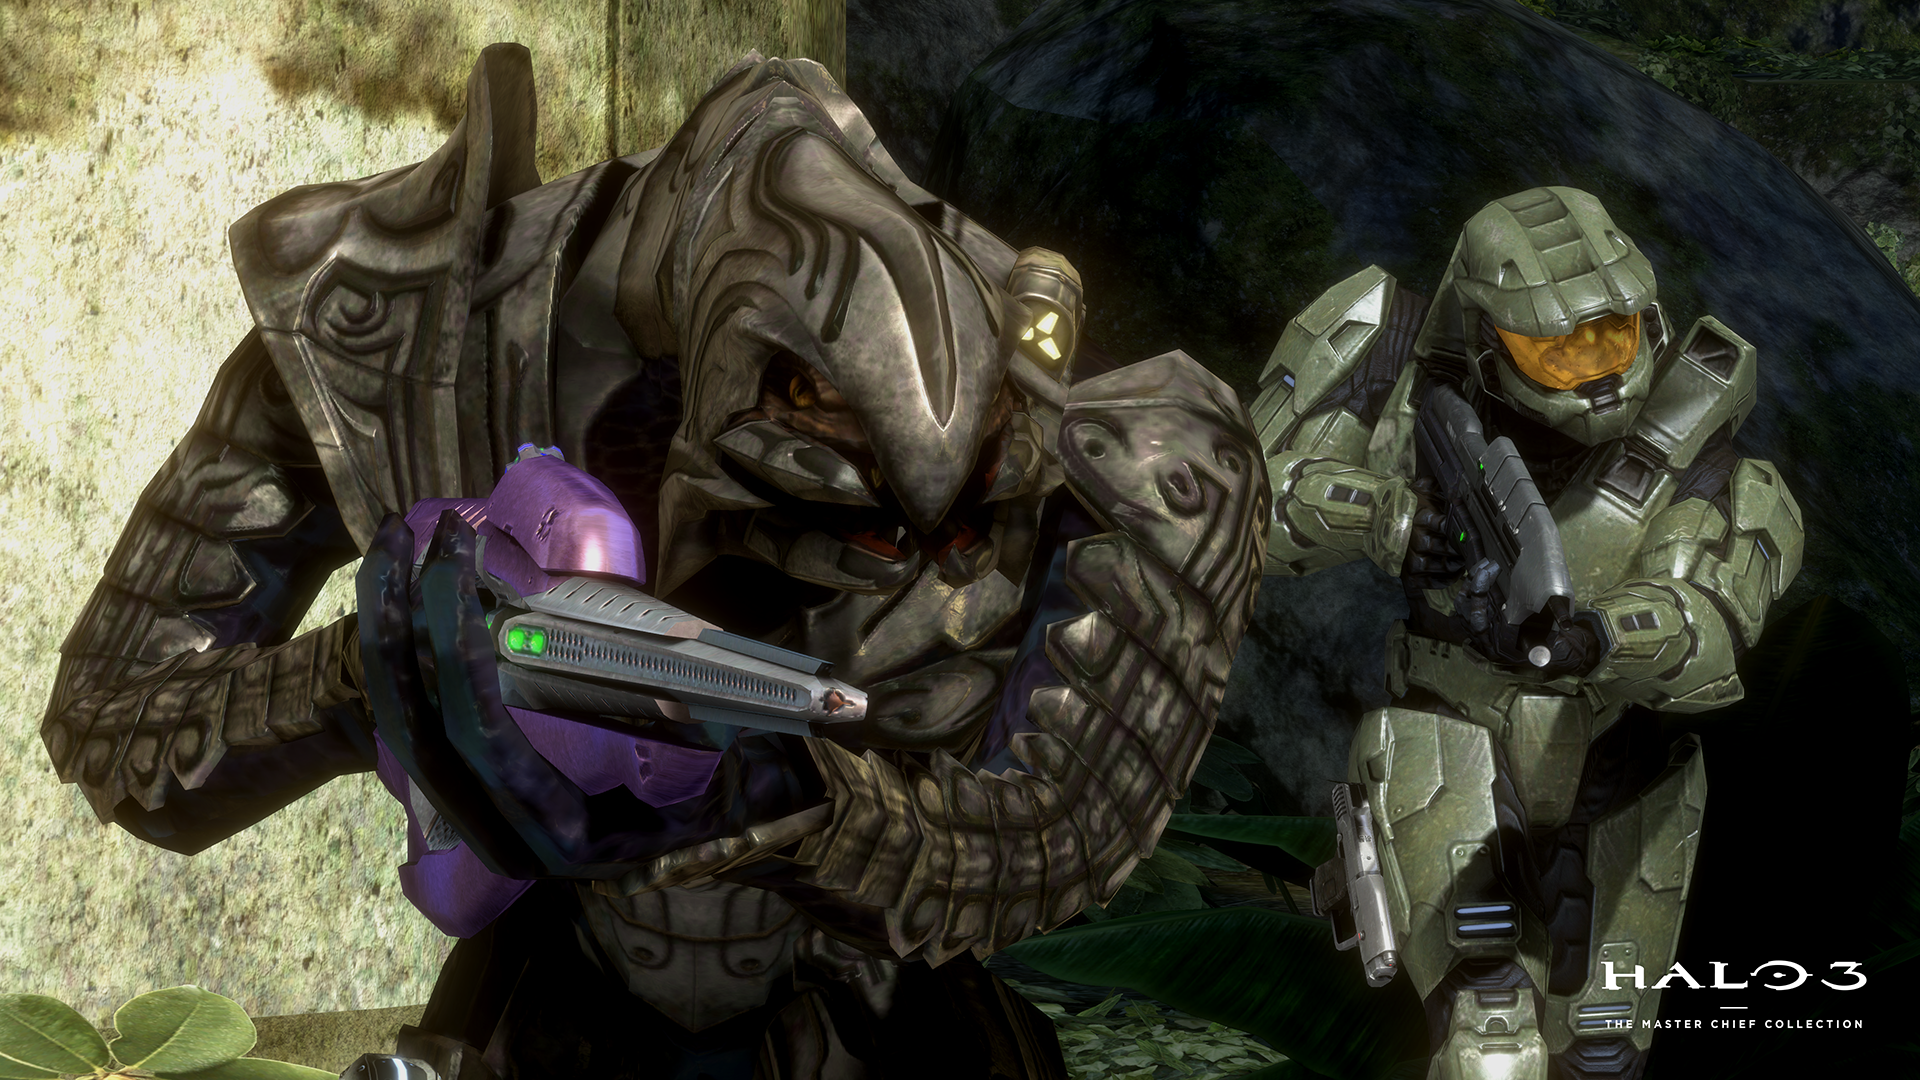 Halo 3 in Master Chief Collection PC is a reminder that it remains the game  Infinite must surpass - VG247